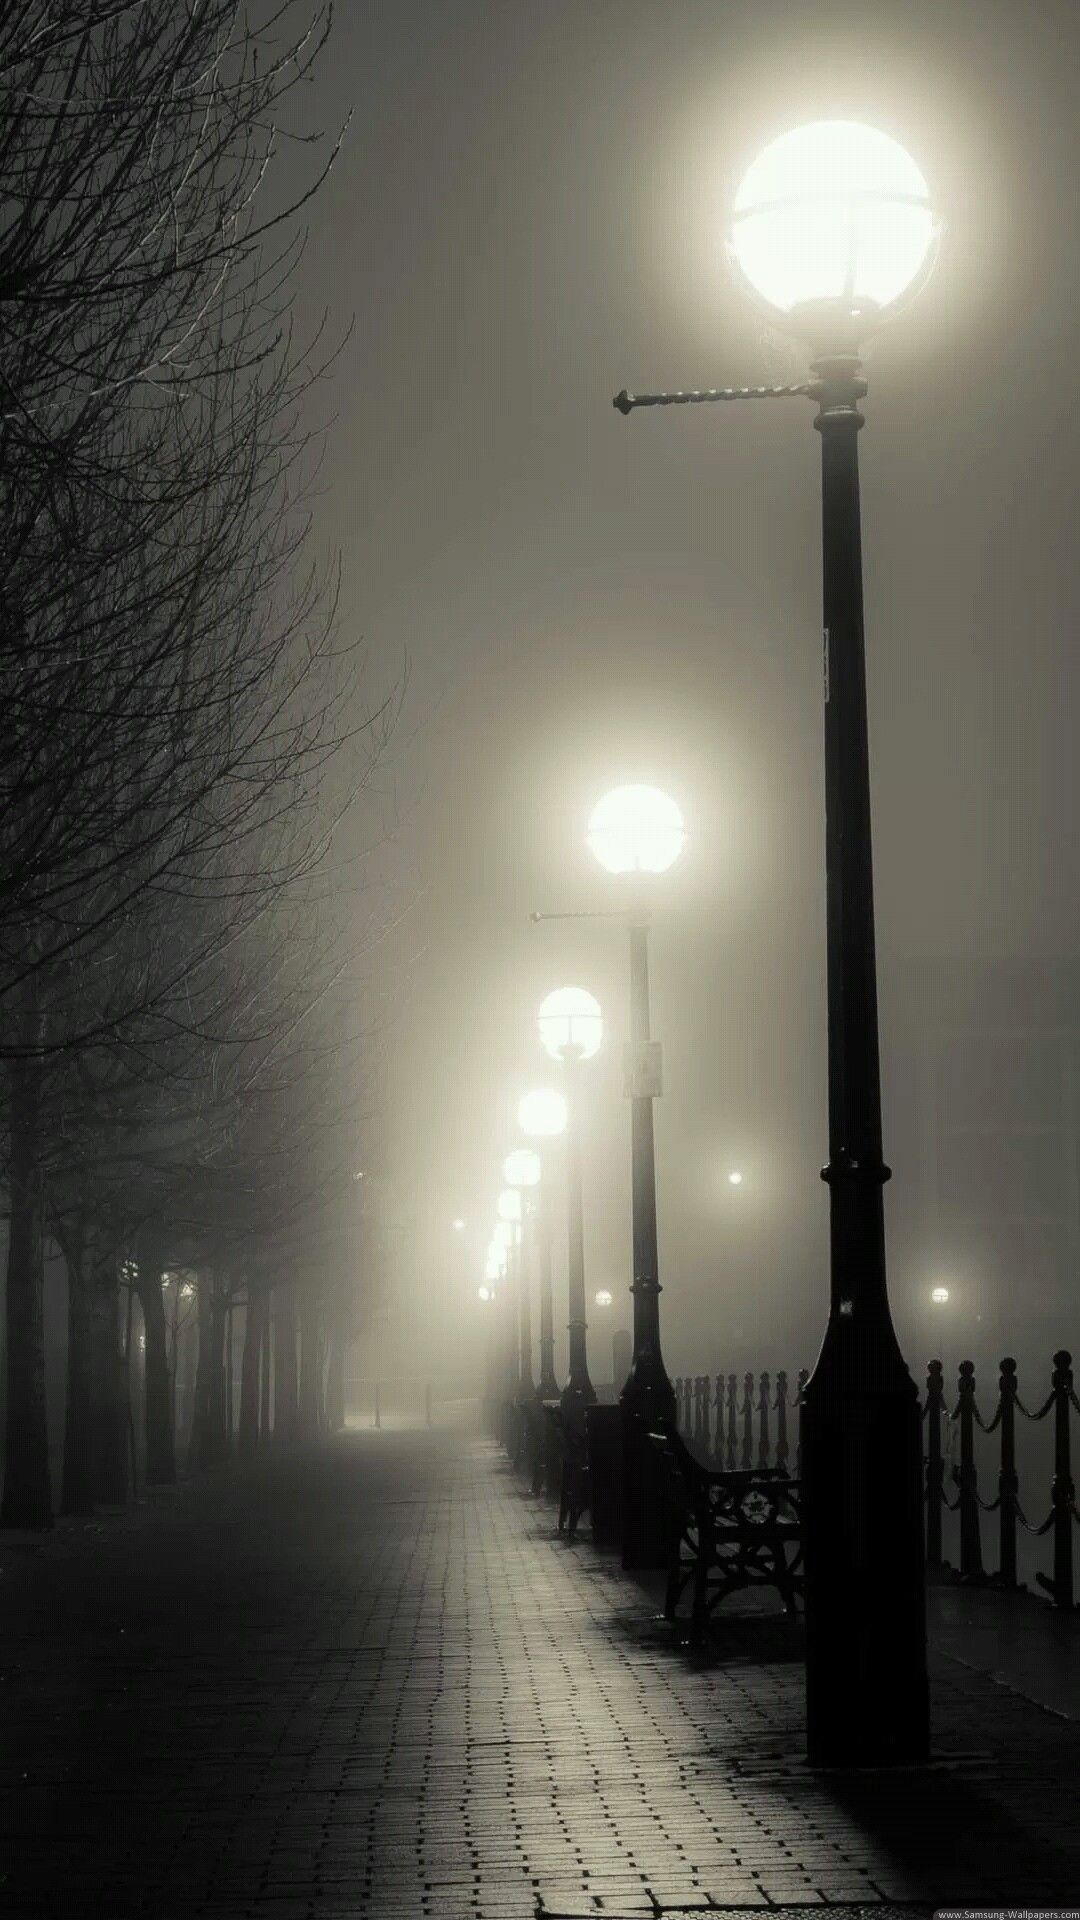 Street Lamp Wallpaper Misc Iphone 6 Plus Wallpapers Foggy Street Lights Iphone